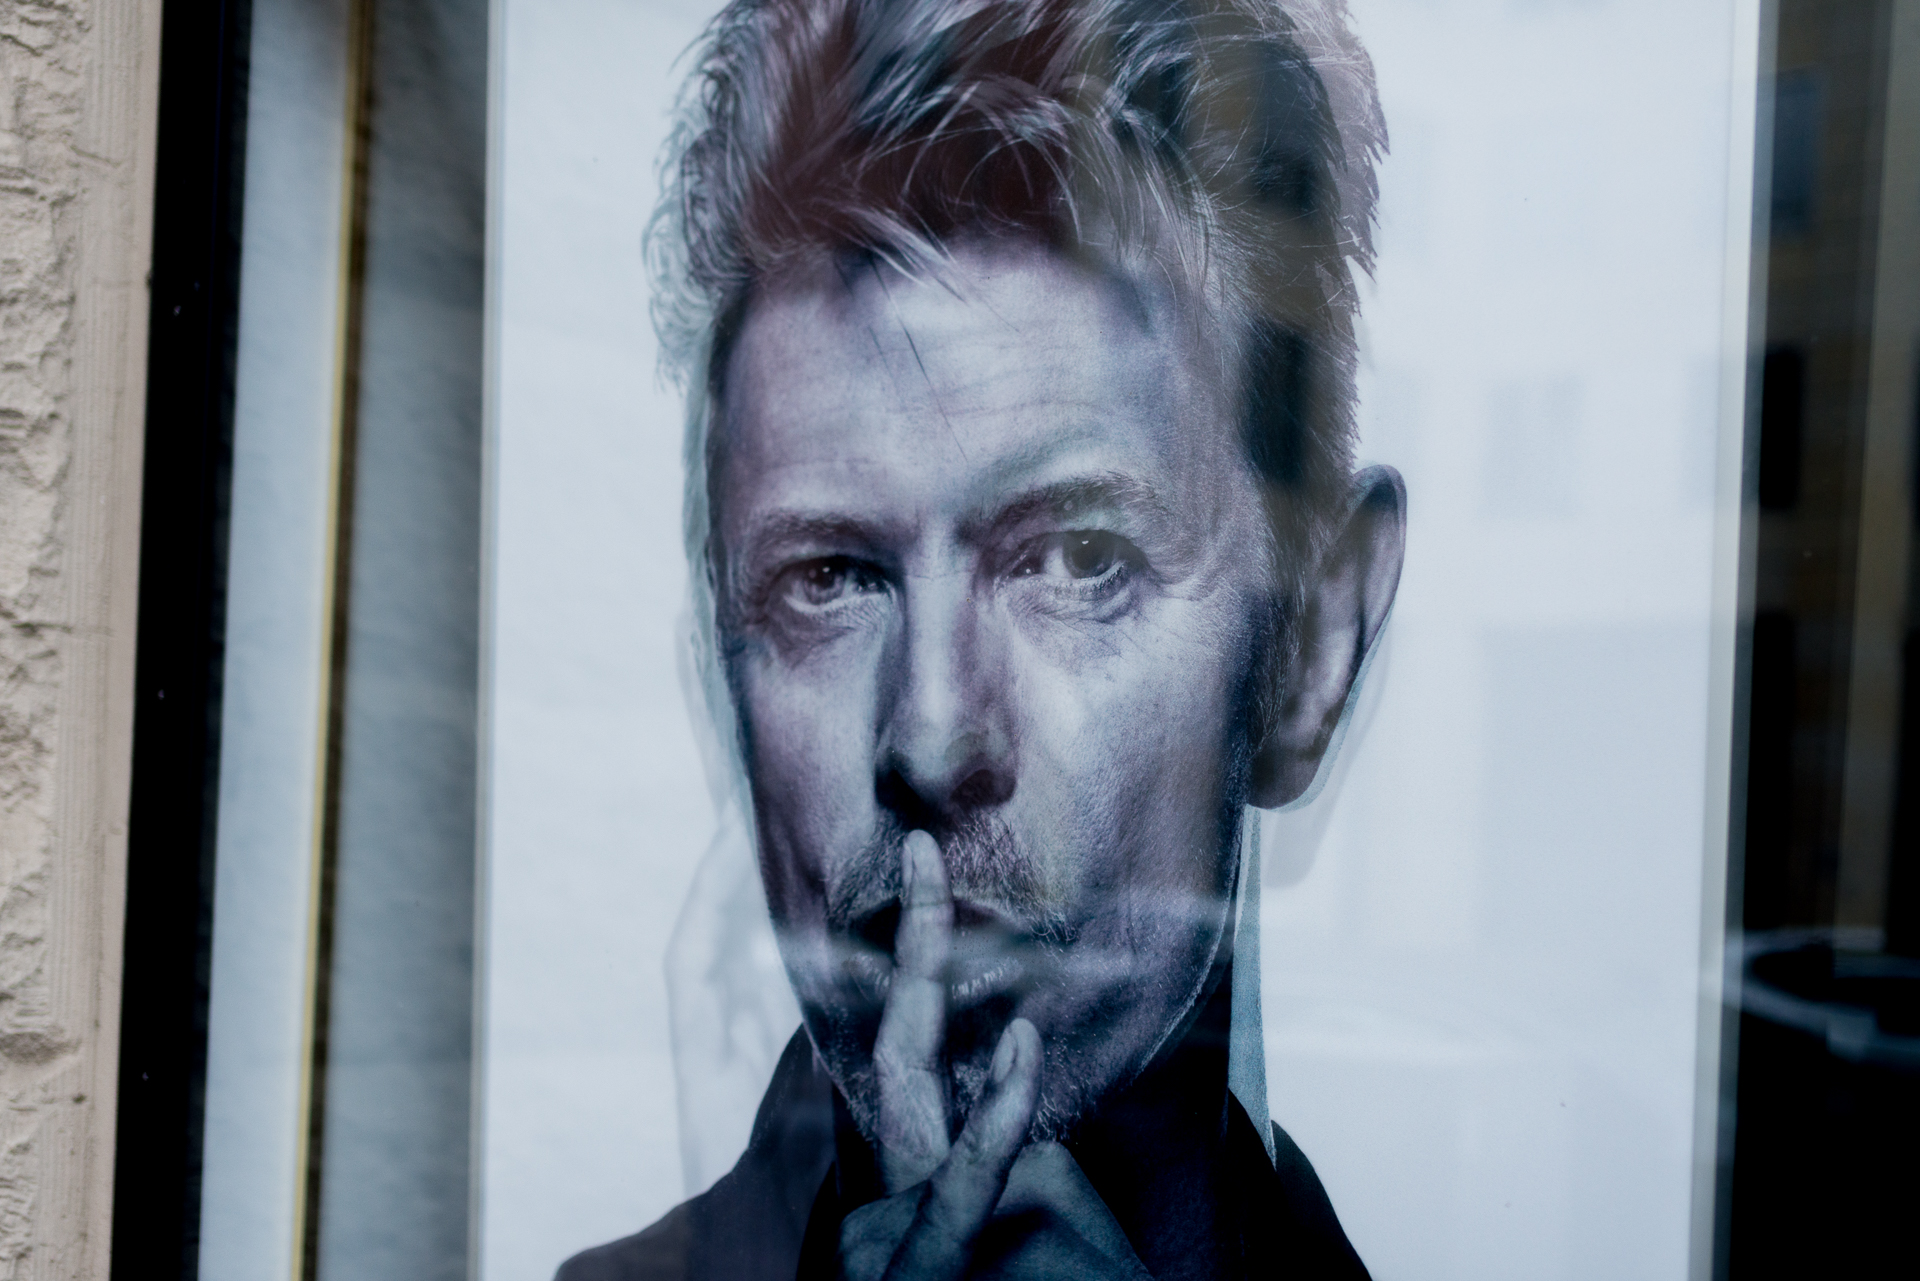 Black and white portrait of David Bowie that is hung behind glass in front of Hansa Studios in Berlin, Germany